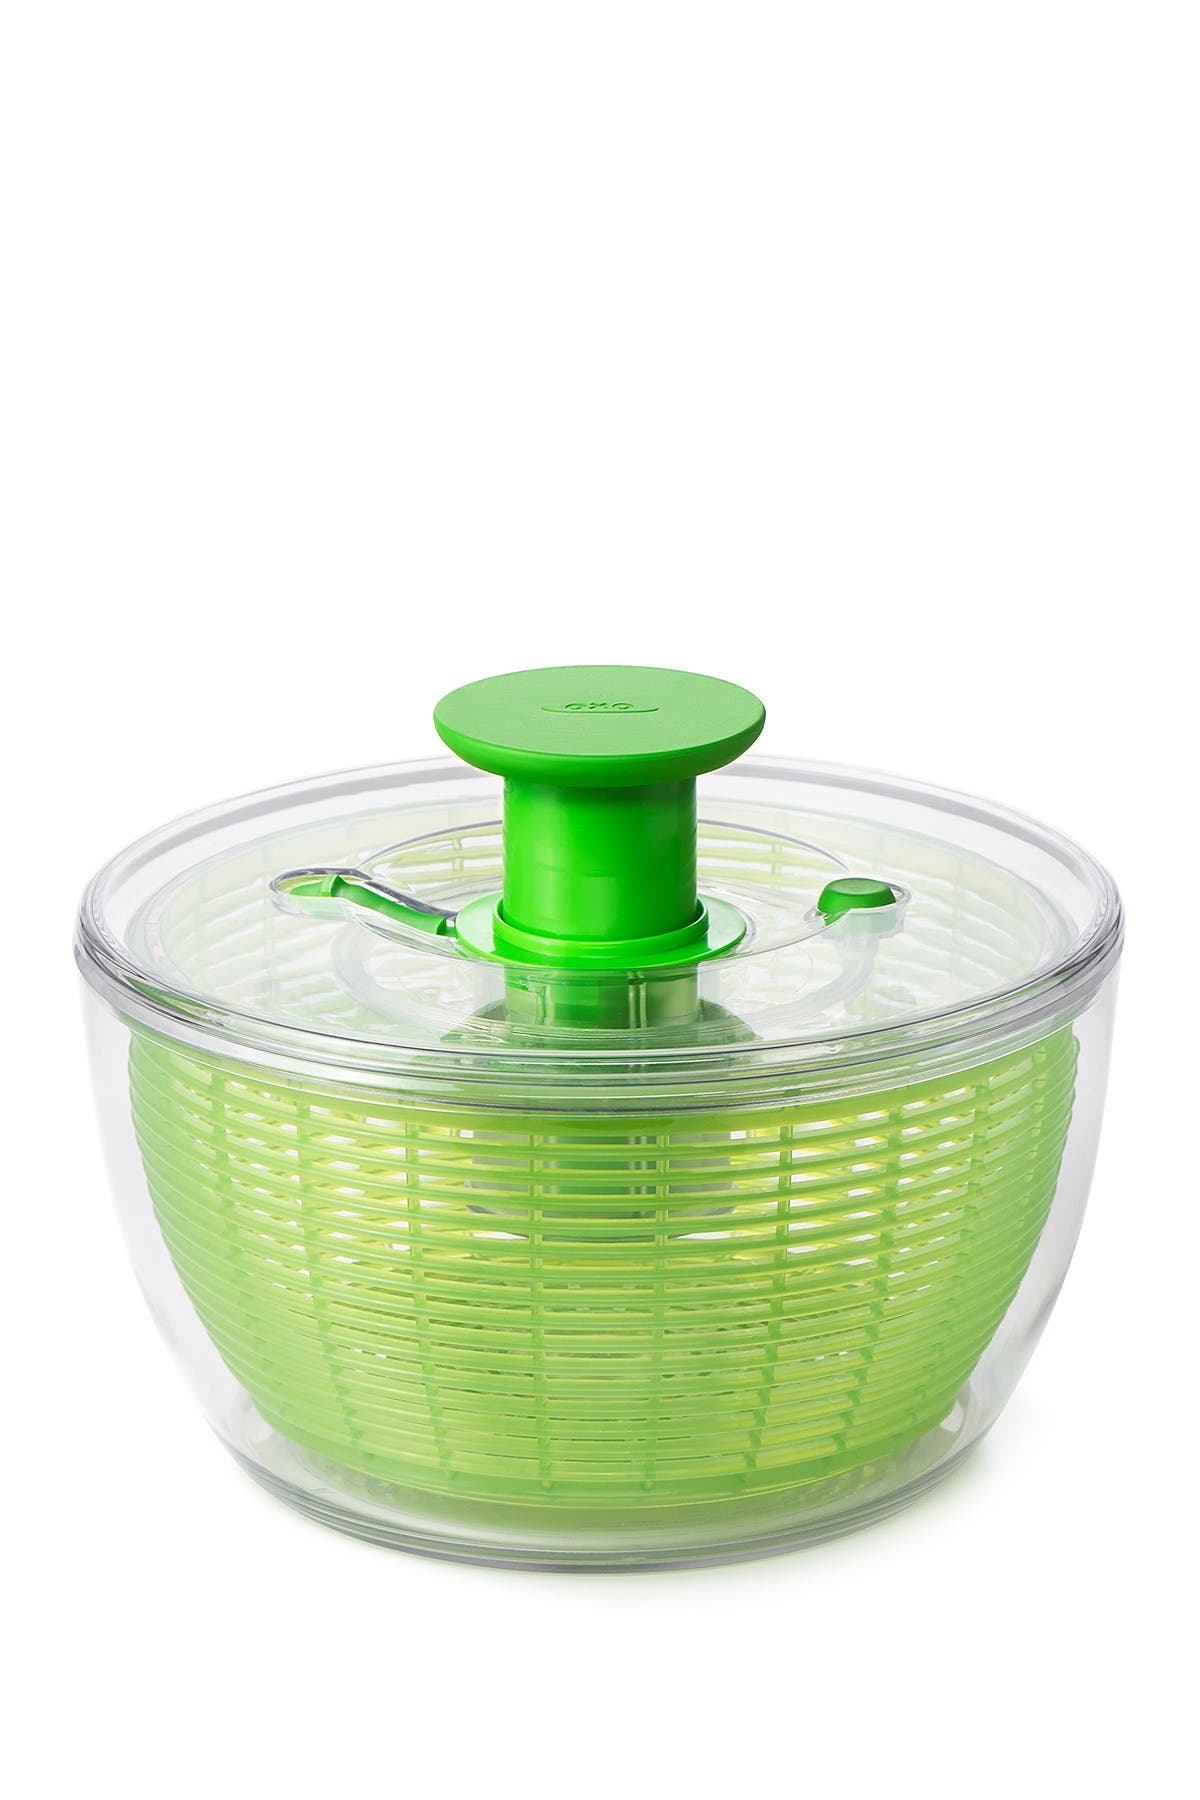 Image of Oxo Good Grips Green Salad Spinner